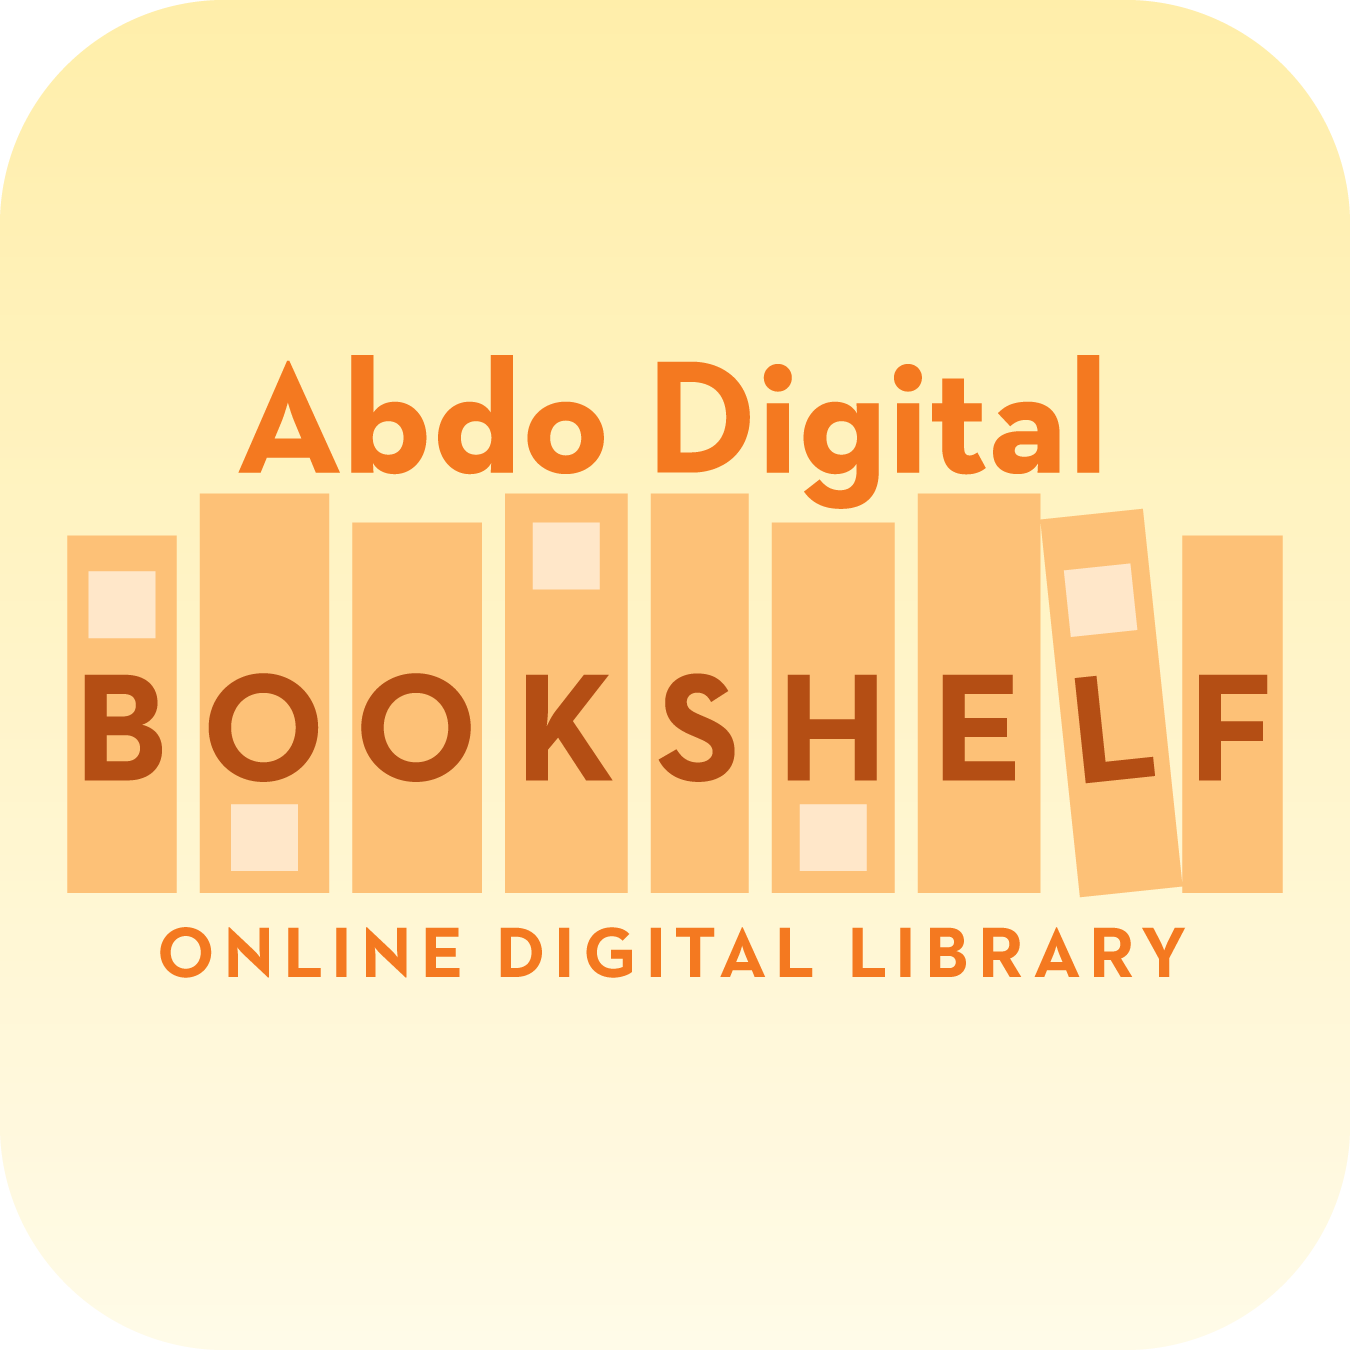 Opens ABDO Digital Library in a new tab